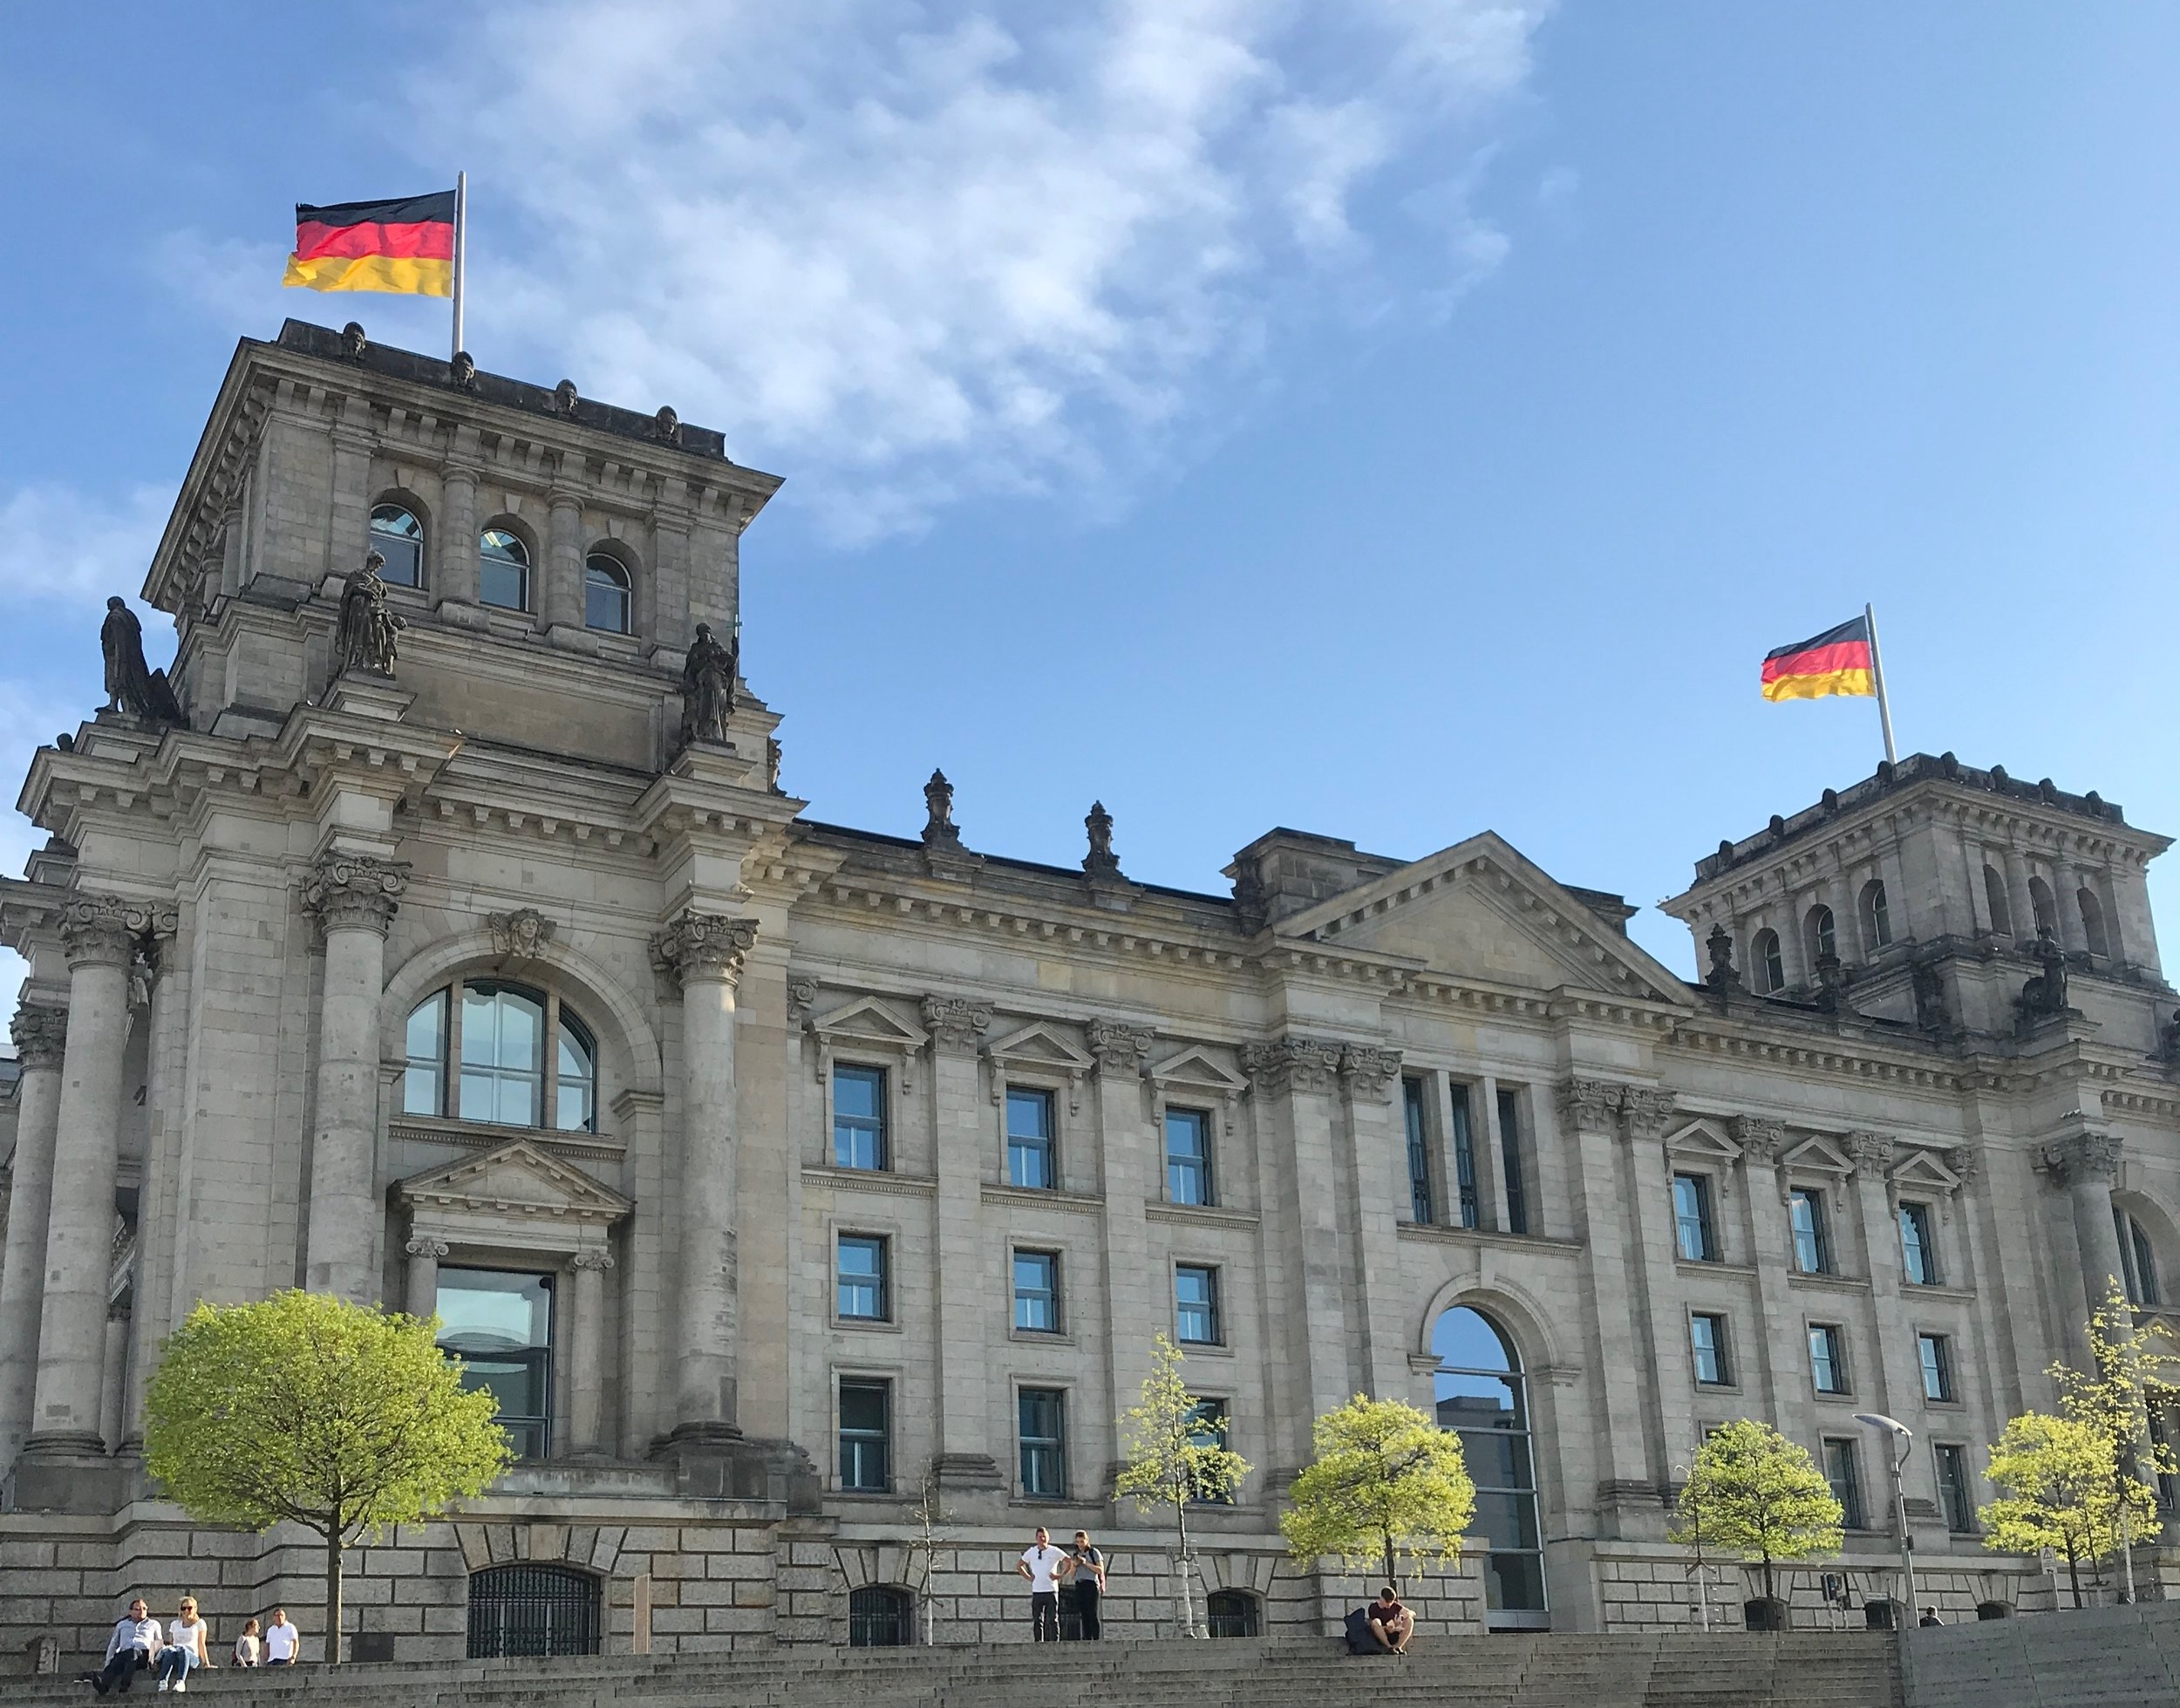 - Reichstag from the River Spree